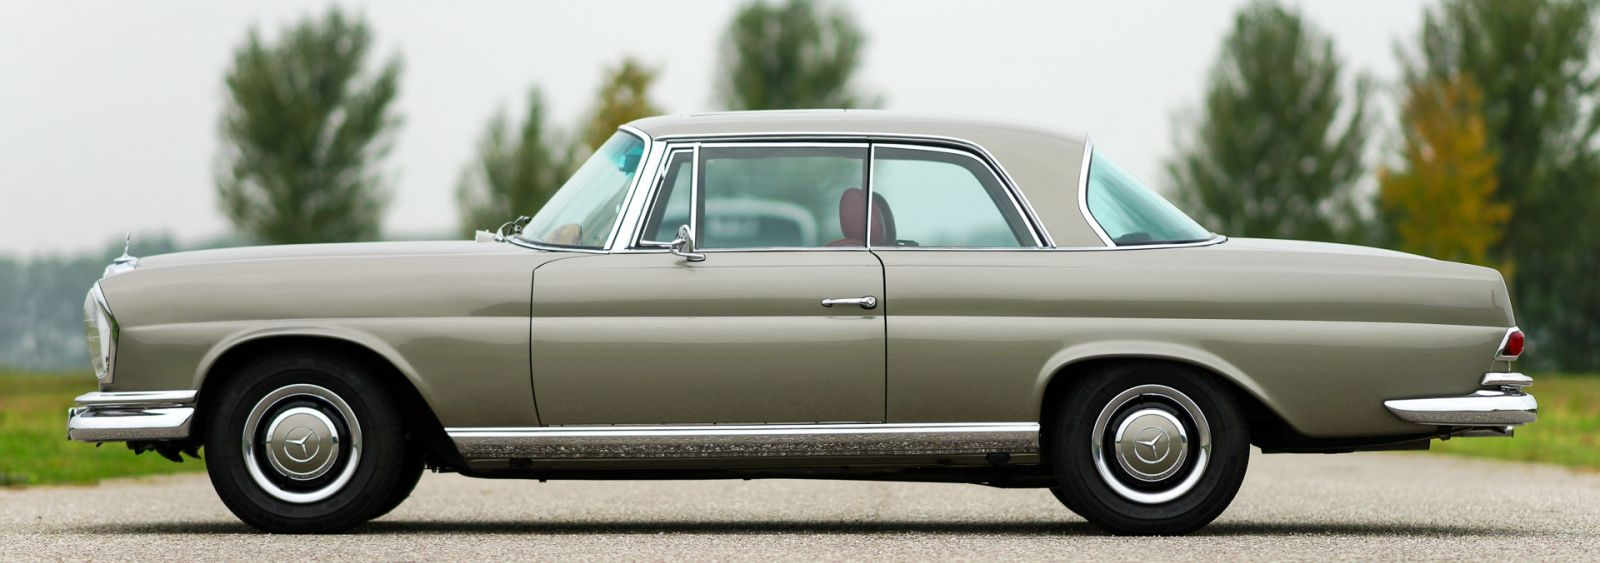 Mercedes benz 250 se coupe 1966 welcome to classicargarage for Mercedes benz 250 se